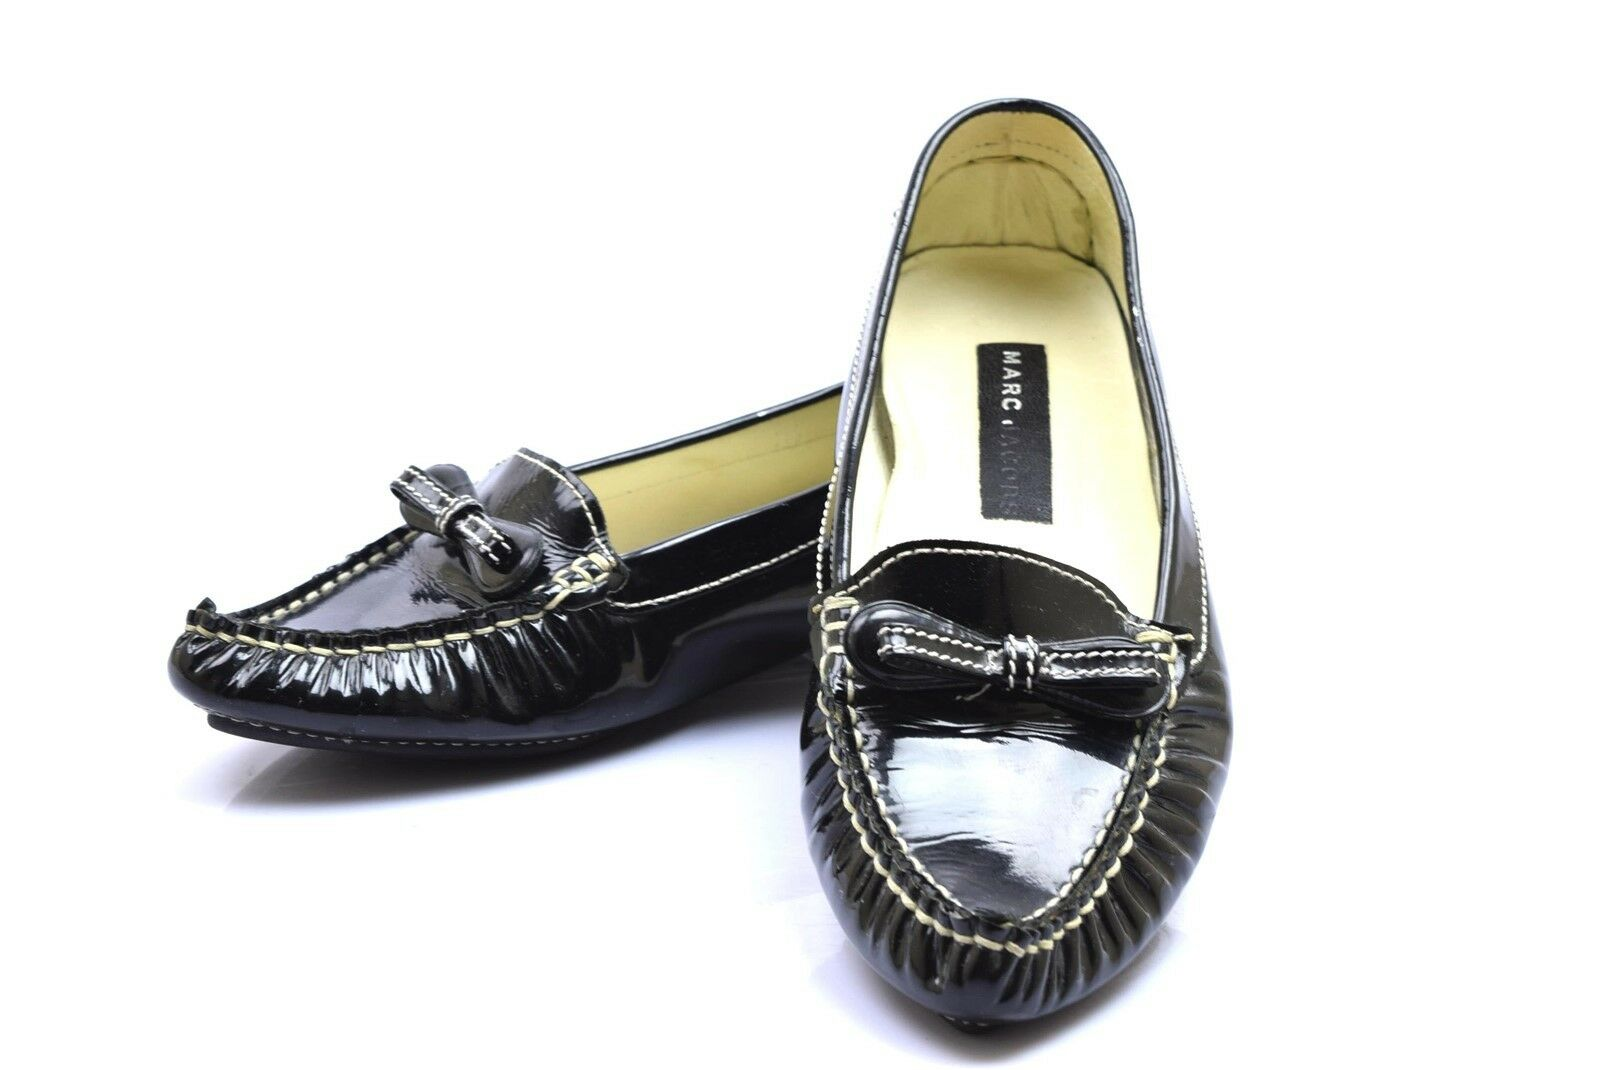 Marc Jacobs Black Patent Leather White Stitching Flats Pointed Toe 7.5 M